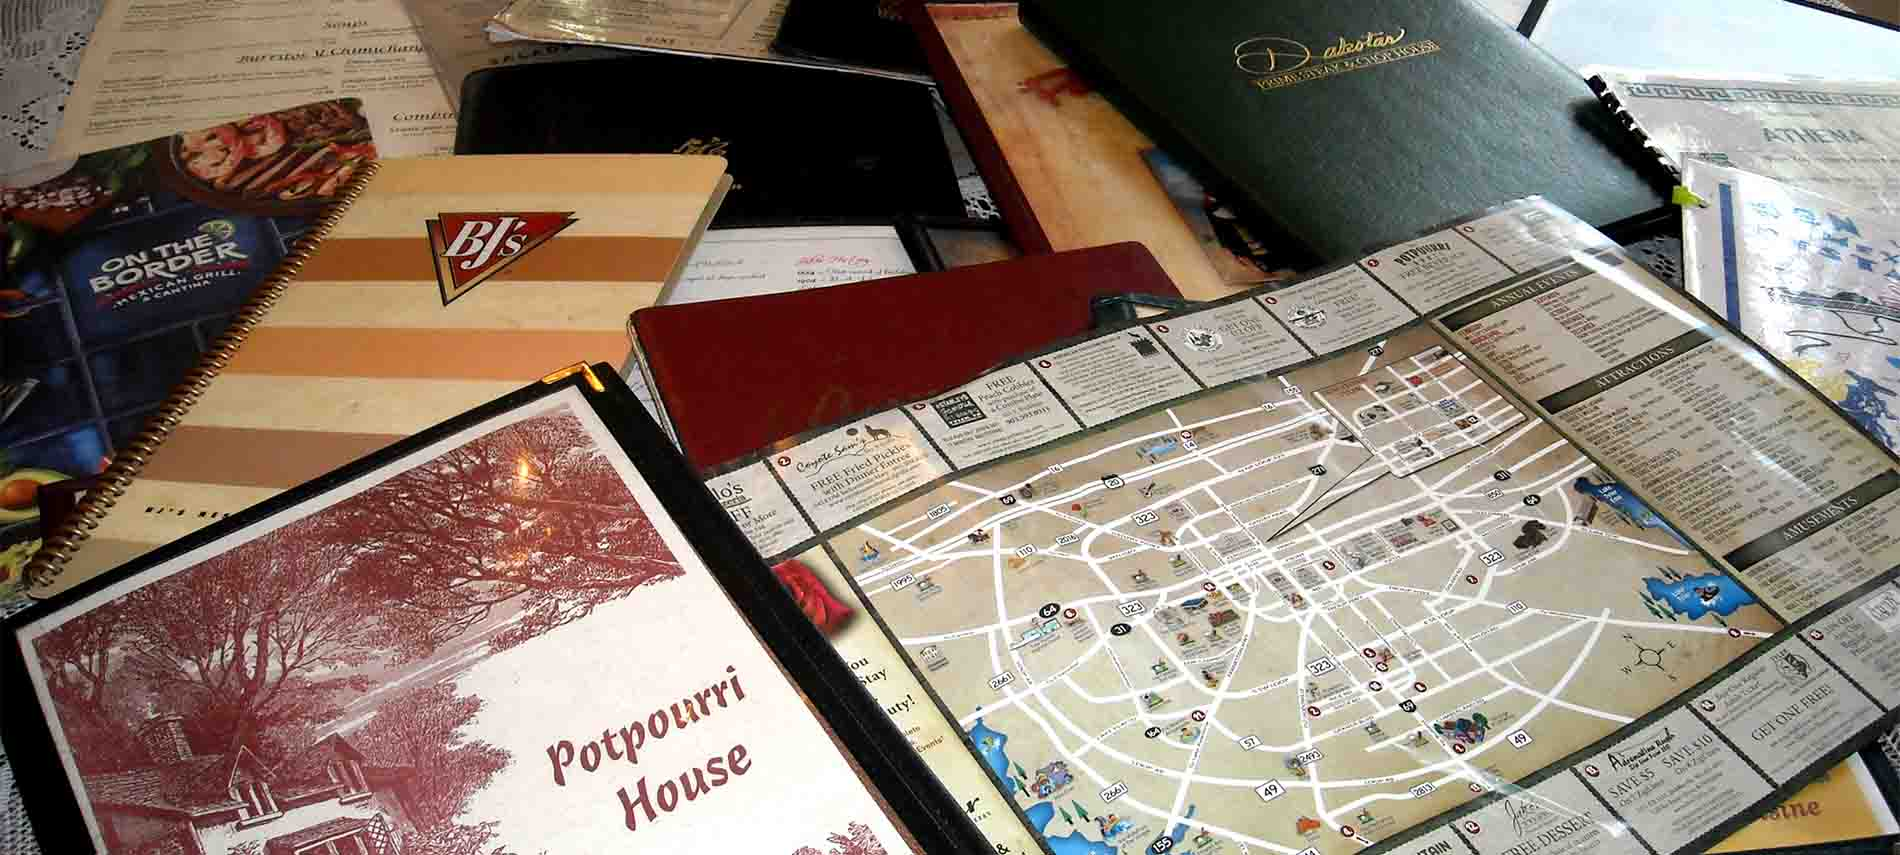 Close up of local menus and area map spread on the lace-topped breakfast table